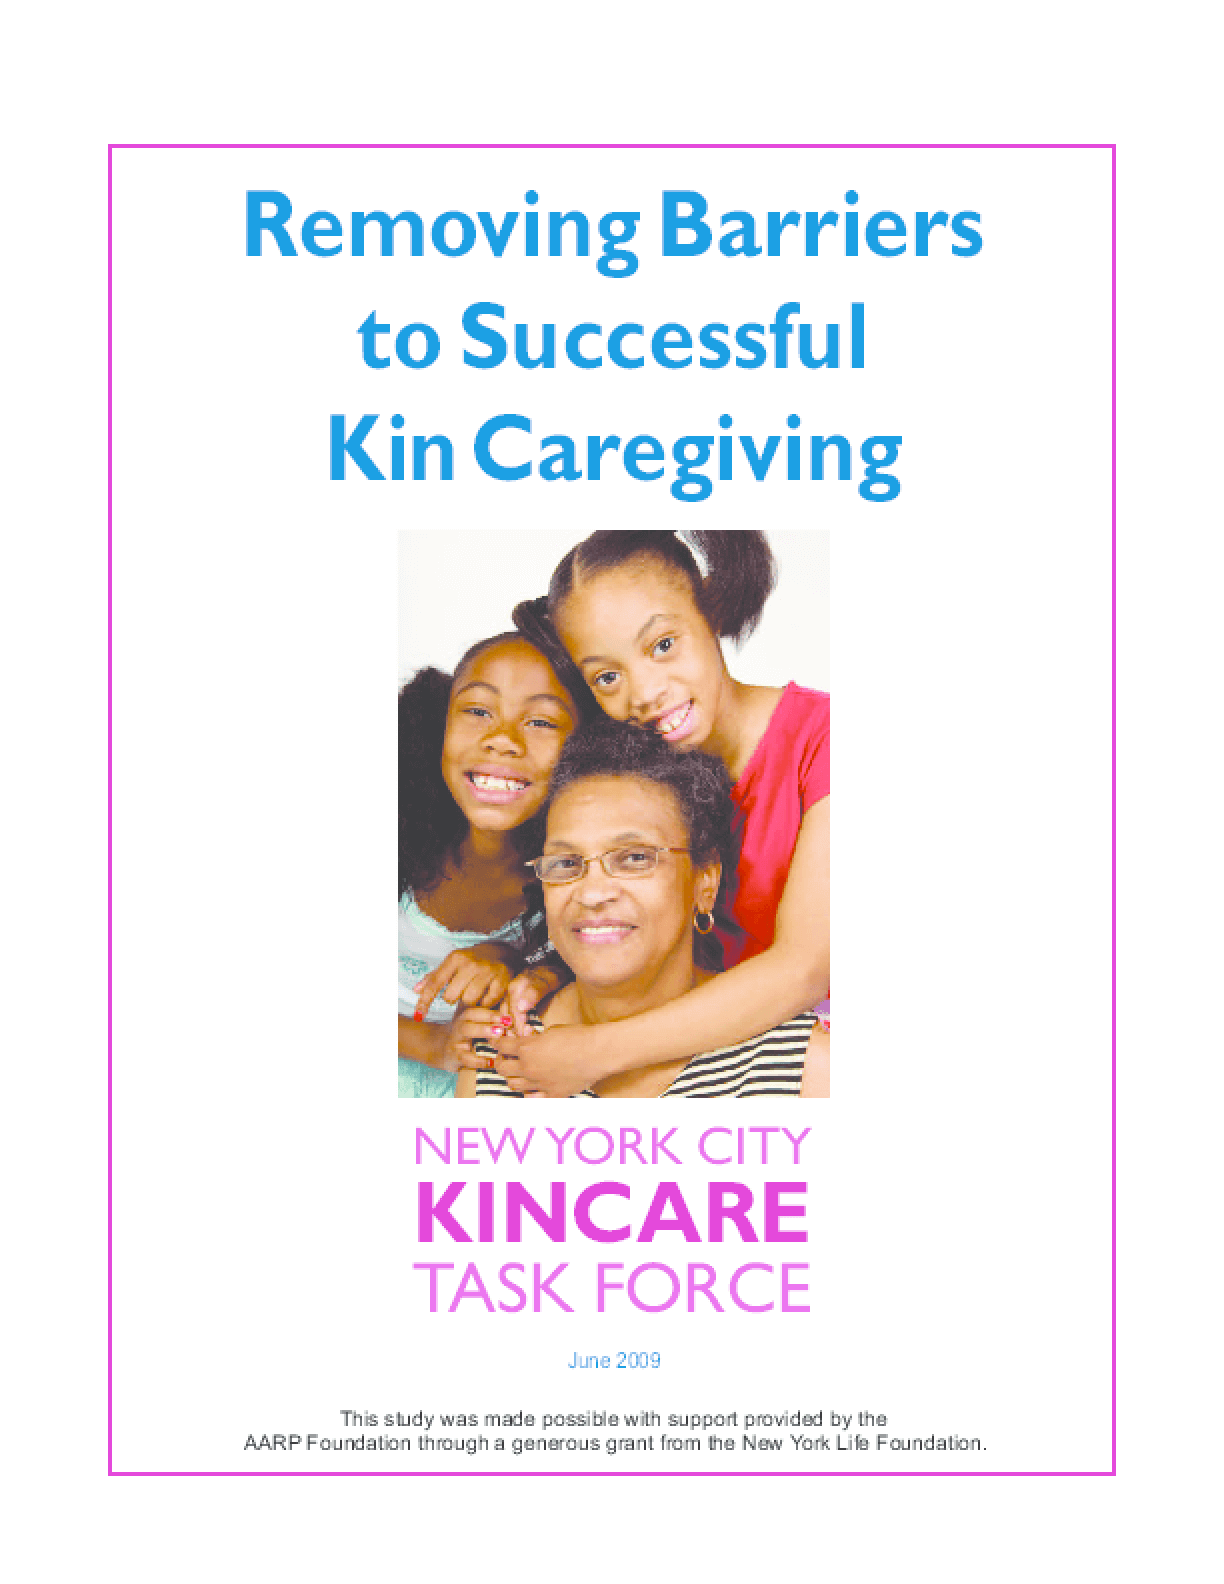 Removing Barriers to Successful Kin Caregiving